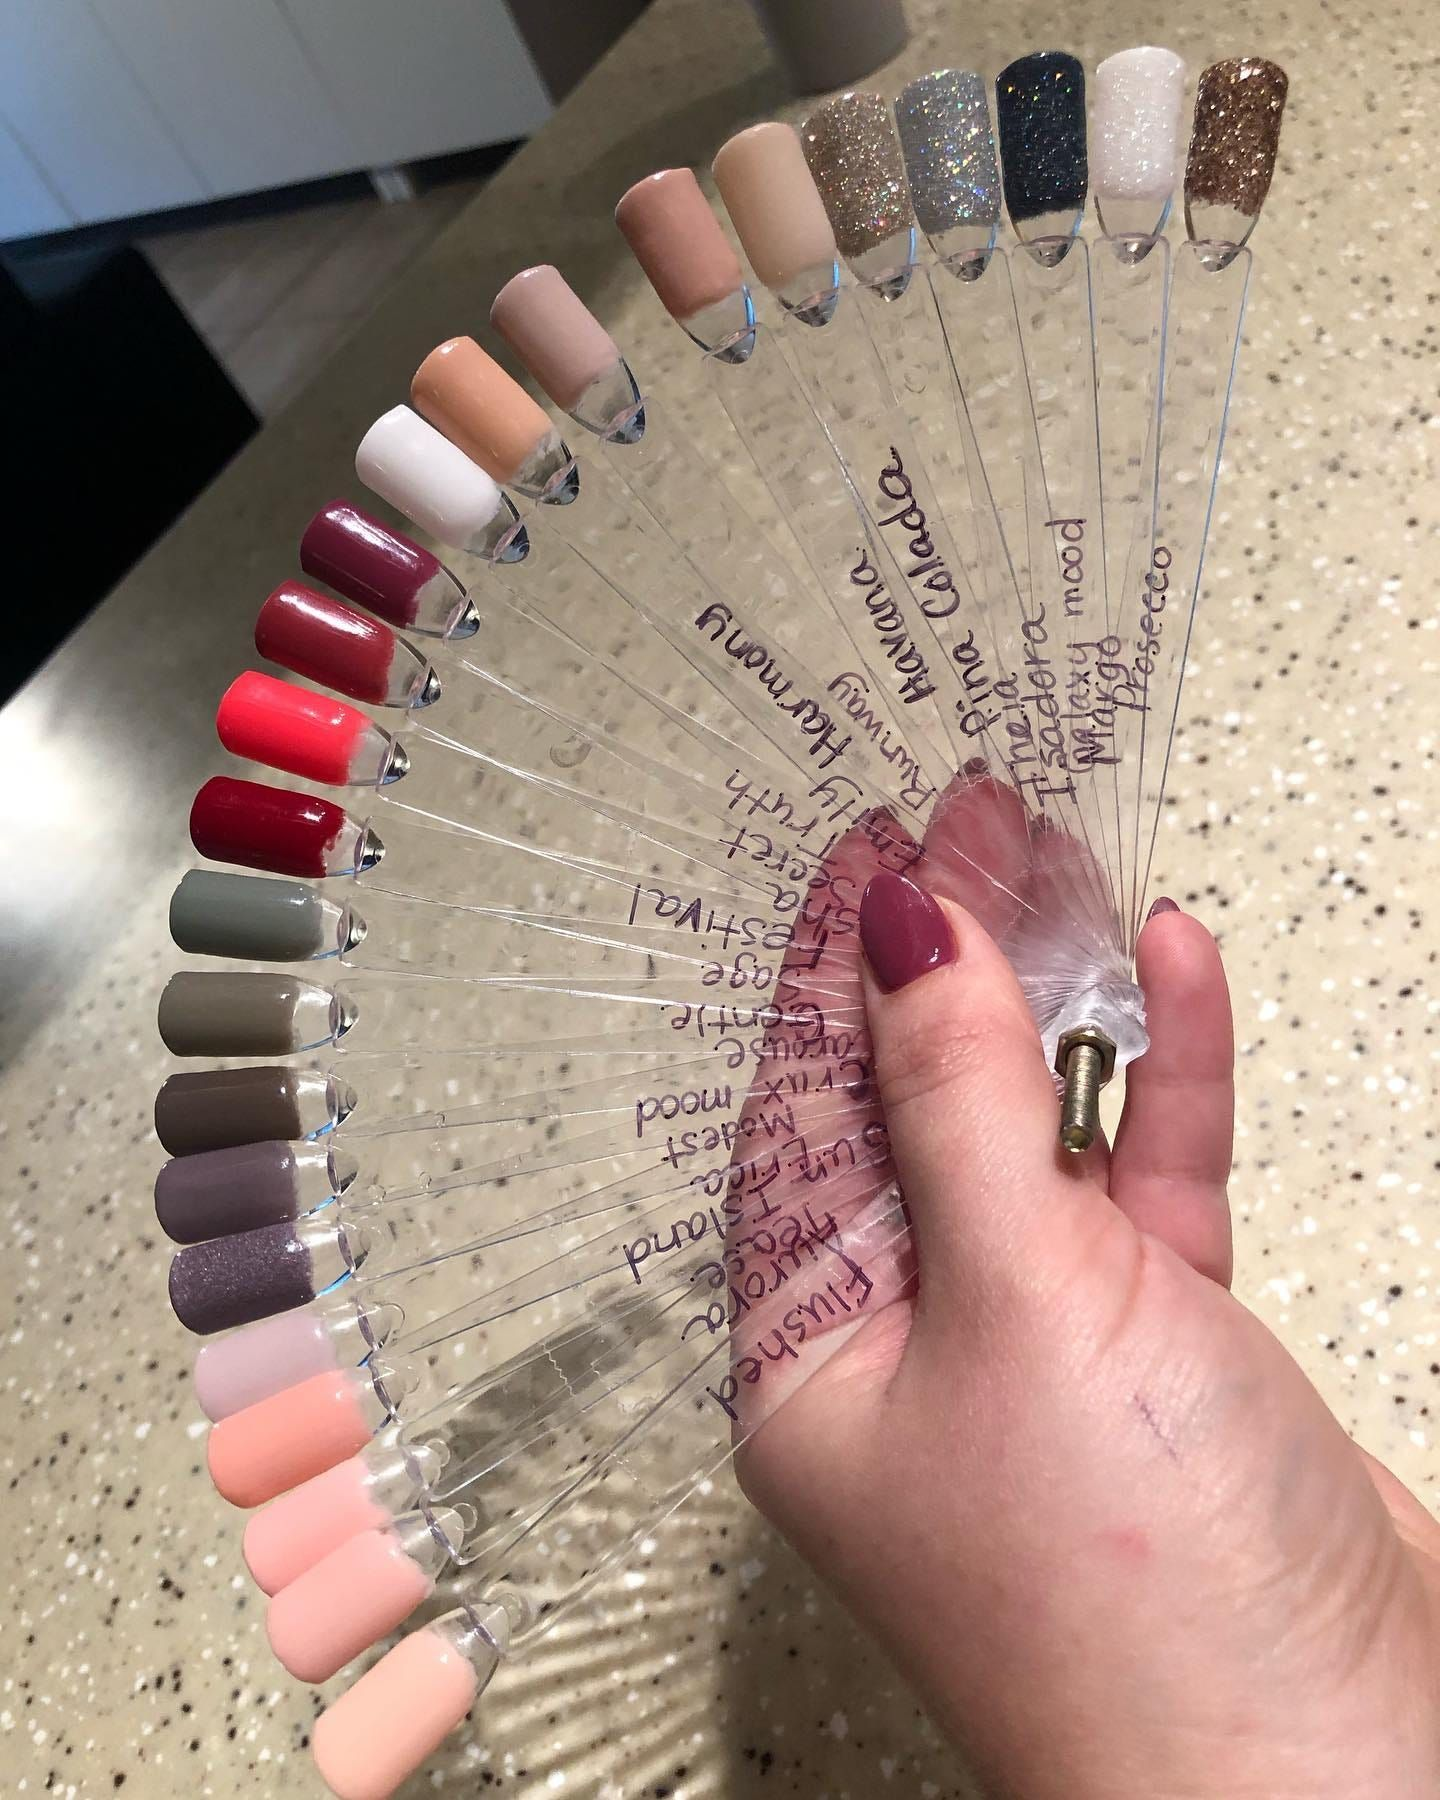 Swatch On Swatch On Swatch Revel Nail Dip Revel Nail Dip Powder Nail Dipping Powder Colors